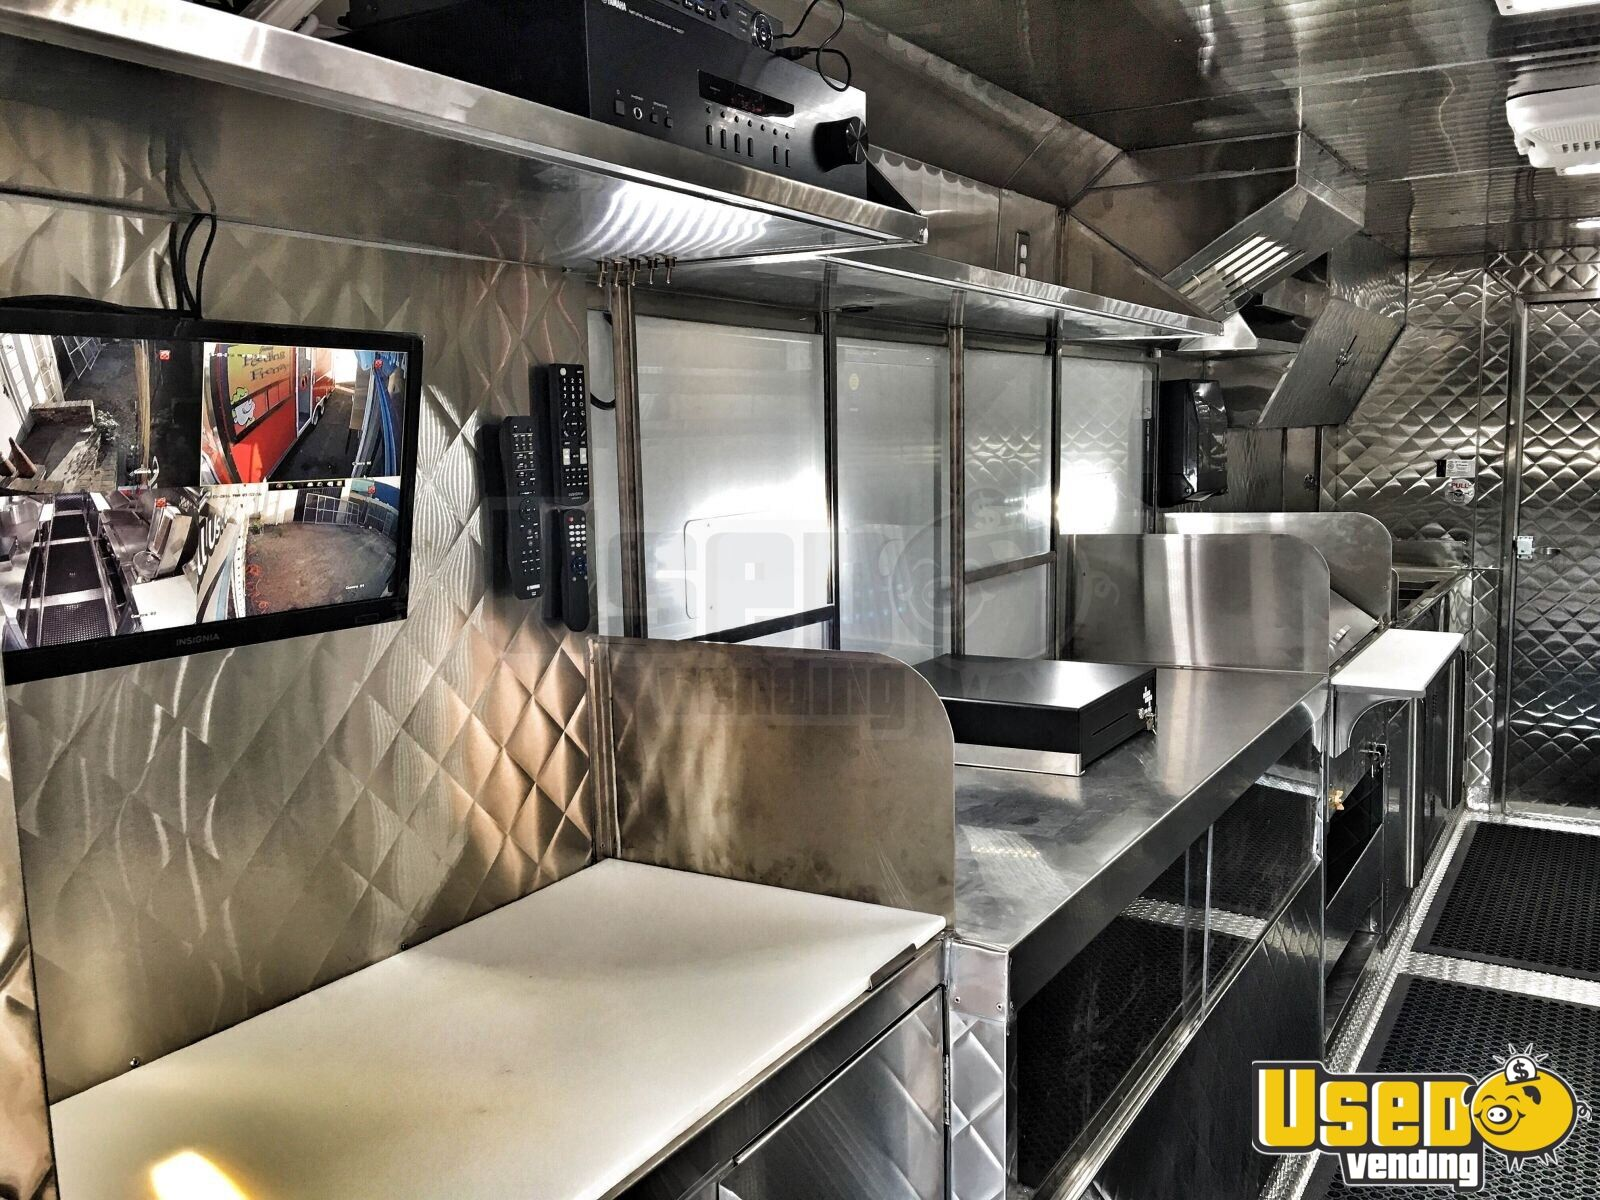 1995 Chevrolet Barbecue Food Truck Concession Window California Diesel Engine for Sale - 3